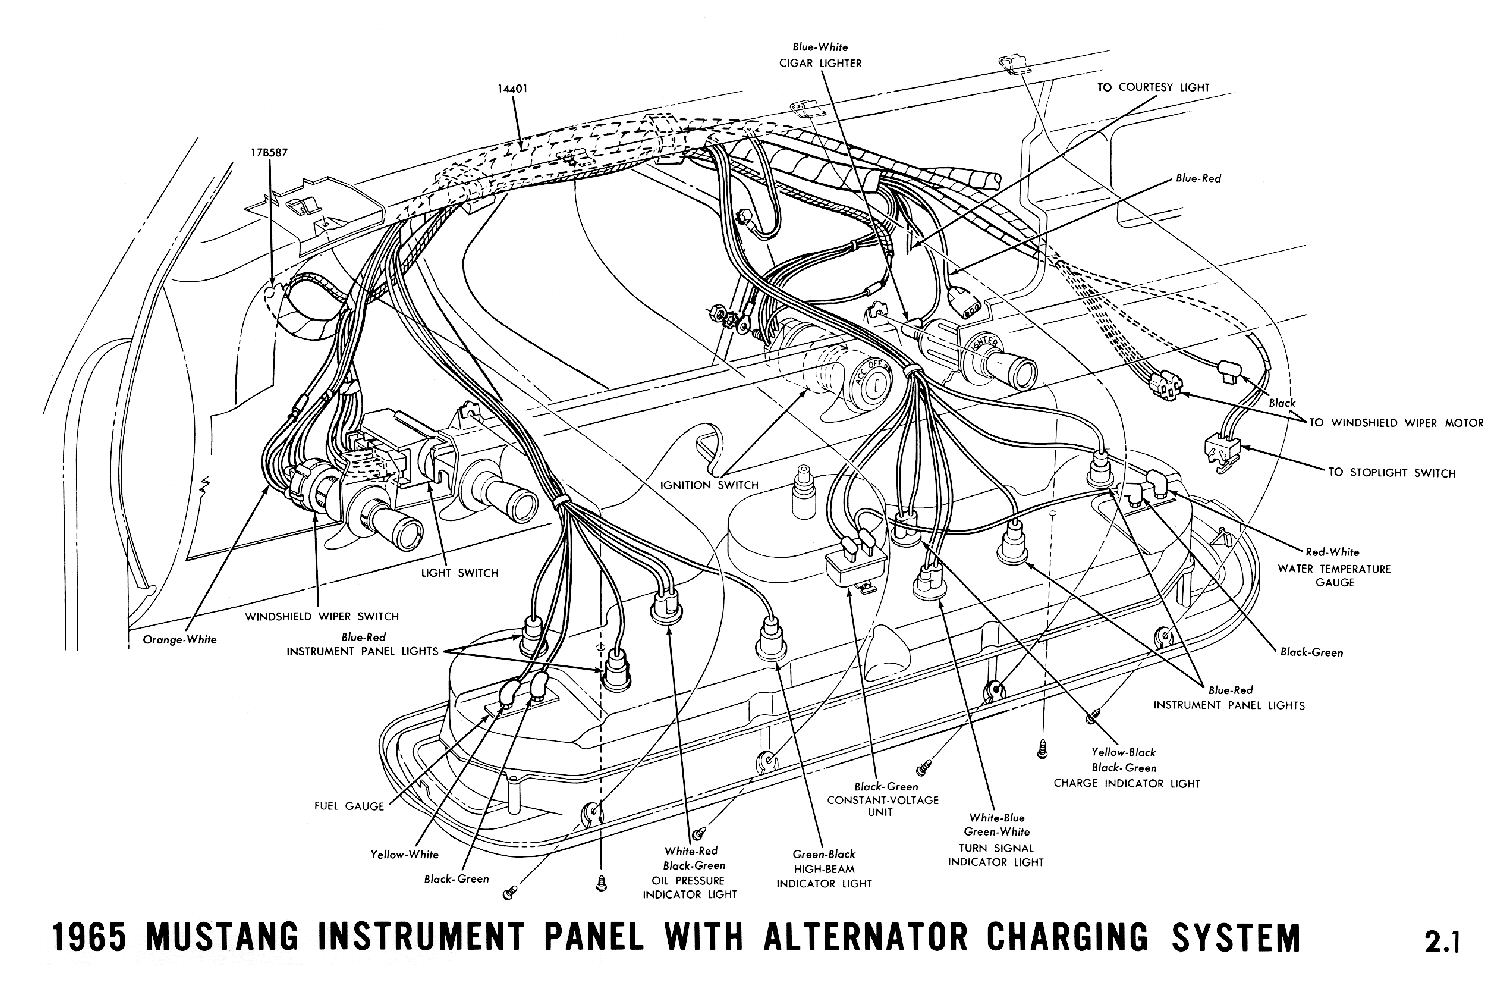 1965 mustang wiring diagrams average joe restoration rh averagejoerestoration com 65 mustang ignition wiring diagram 65 mustang wiring diagram manual